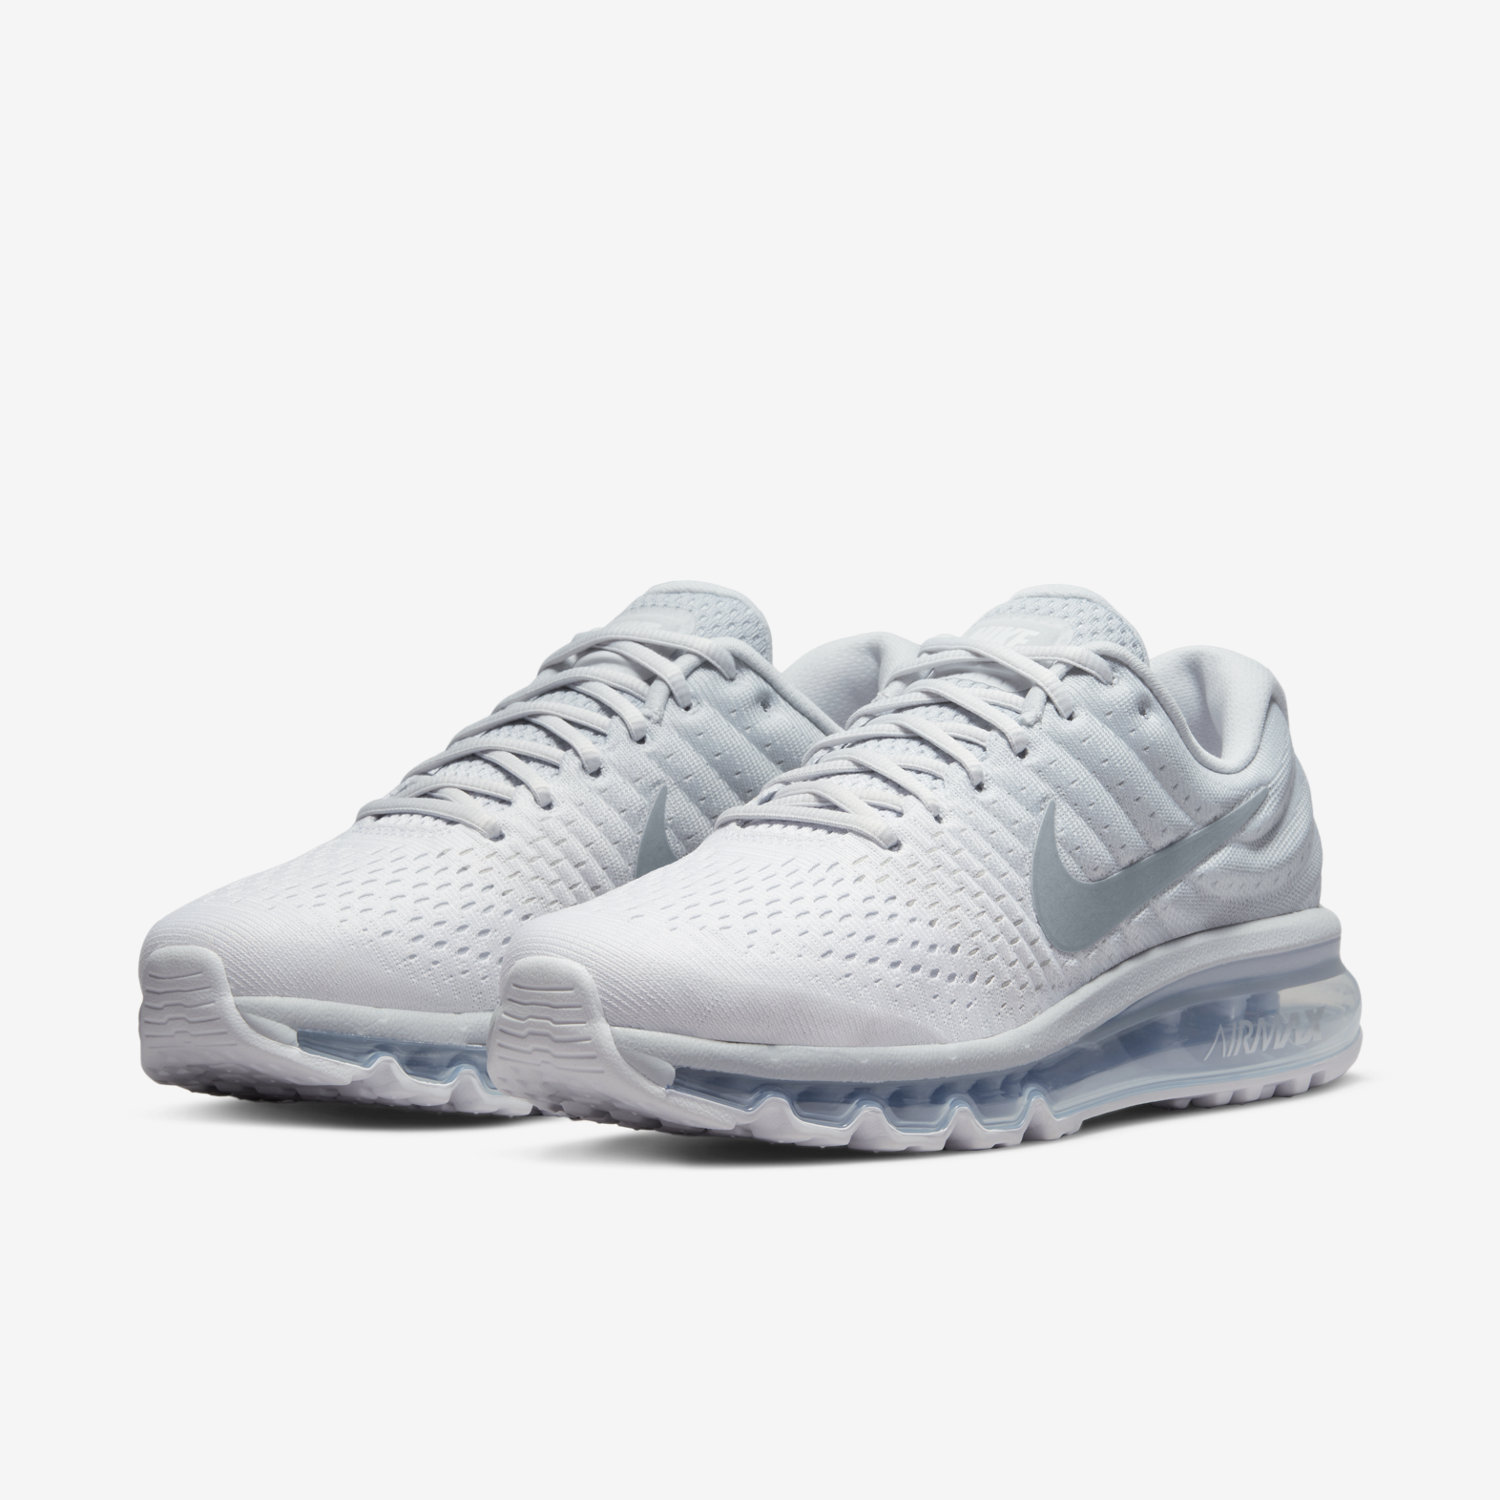 Cheap Nike Air Max 2017 iD Running Shoe. Cheap Nike NZ